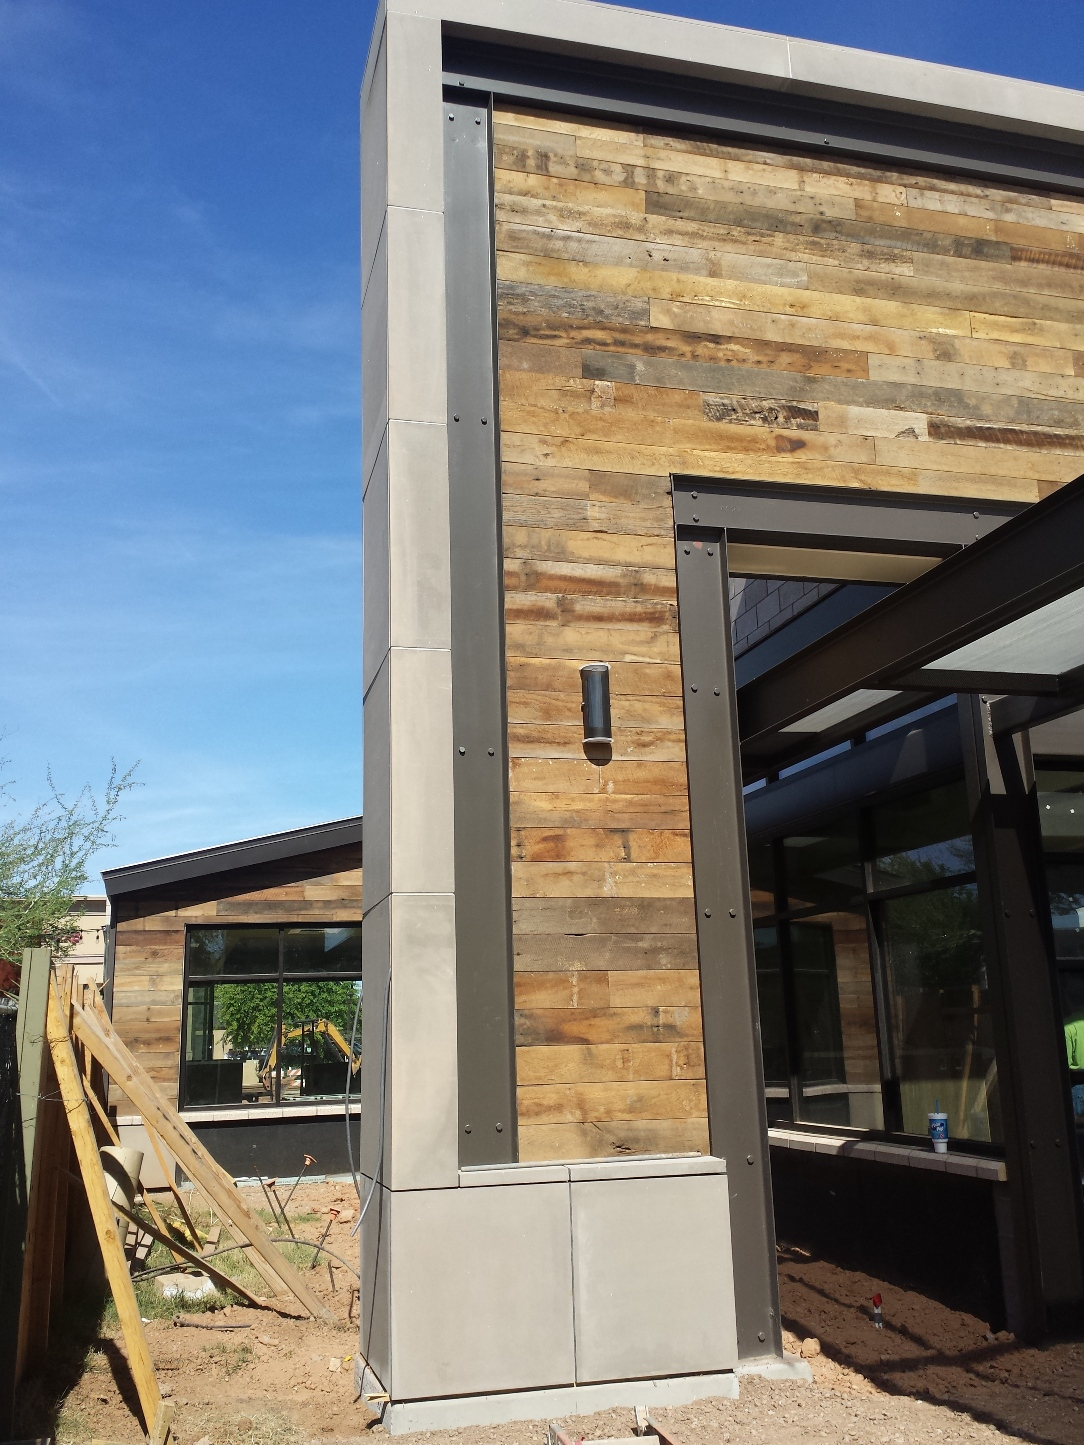 AAS Plant: Mesa Precast in Tempe, AZ | Architectural GFRC Panels Veneer Adding Accent to Wood and Steel Elevation - Gilbert Snooze Restaurant, AZ